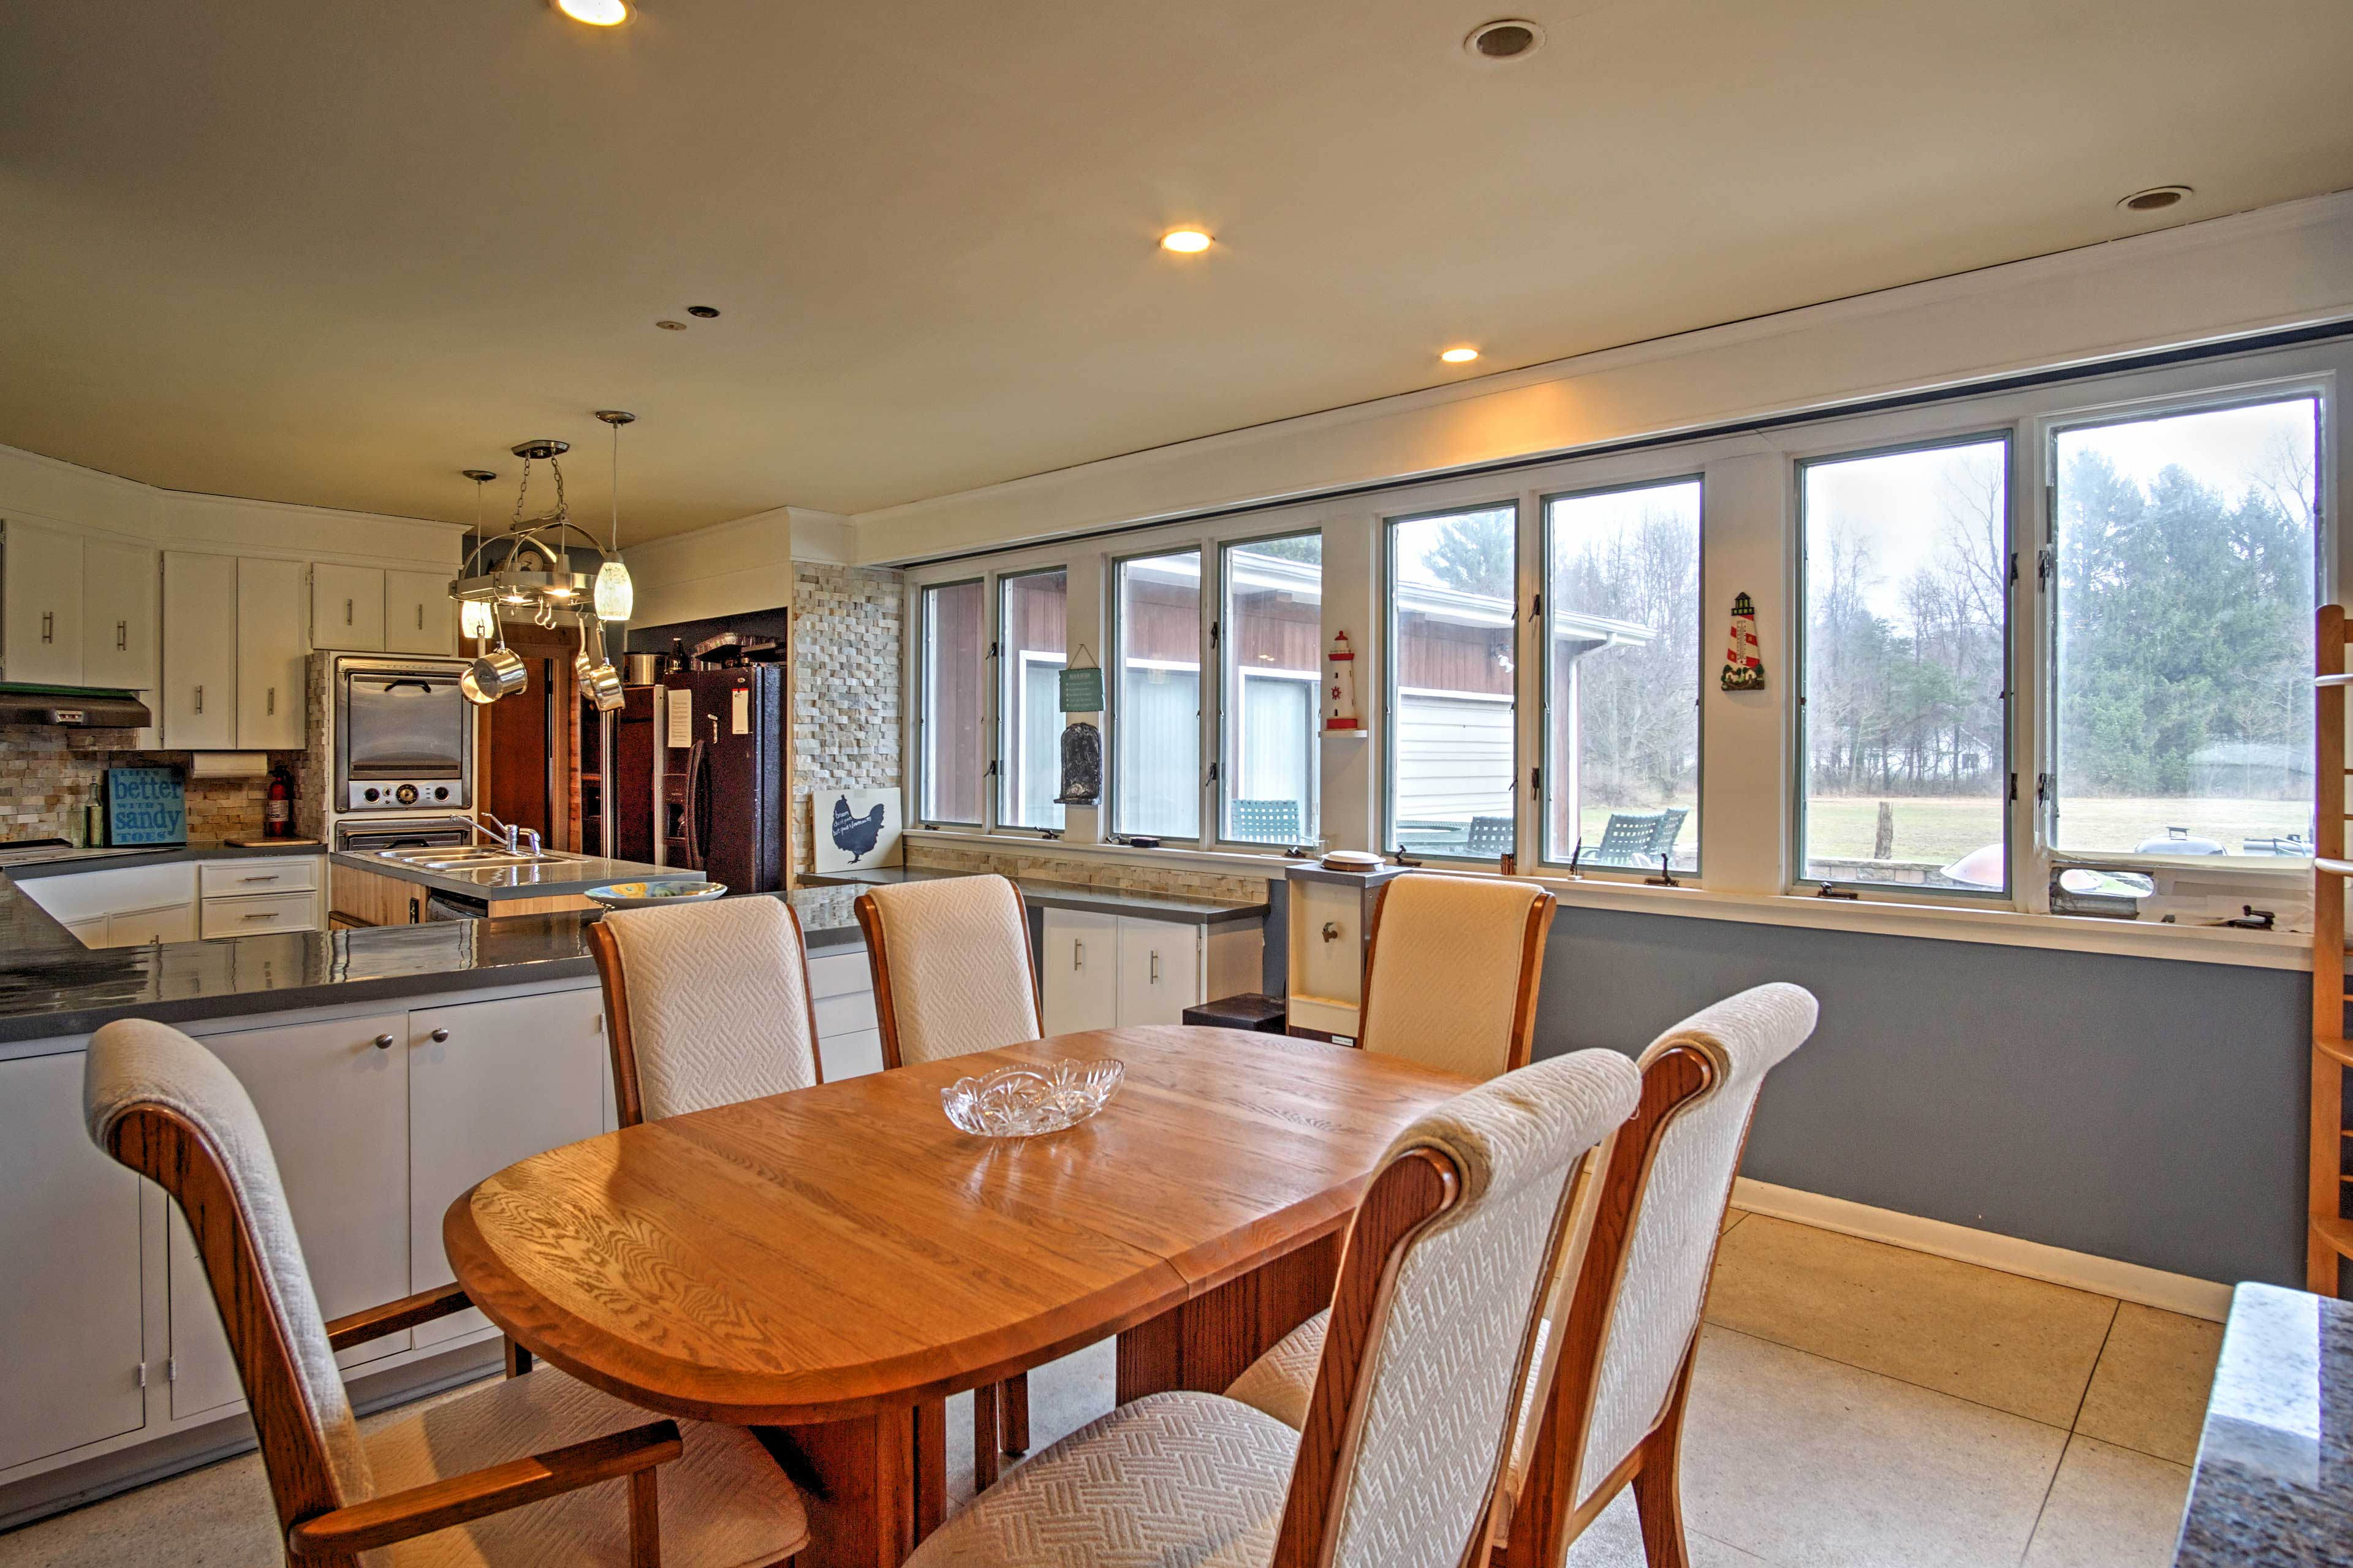 Gather around the dining table to enjoy your meals.